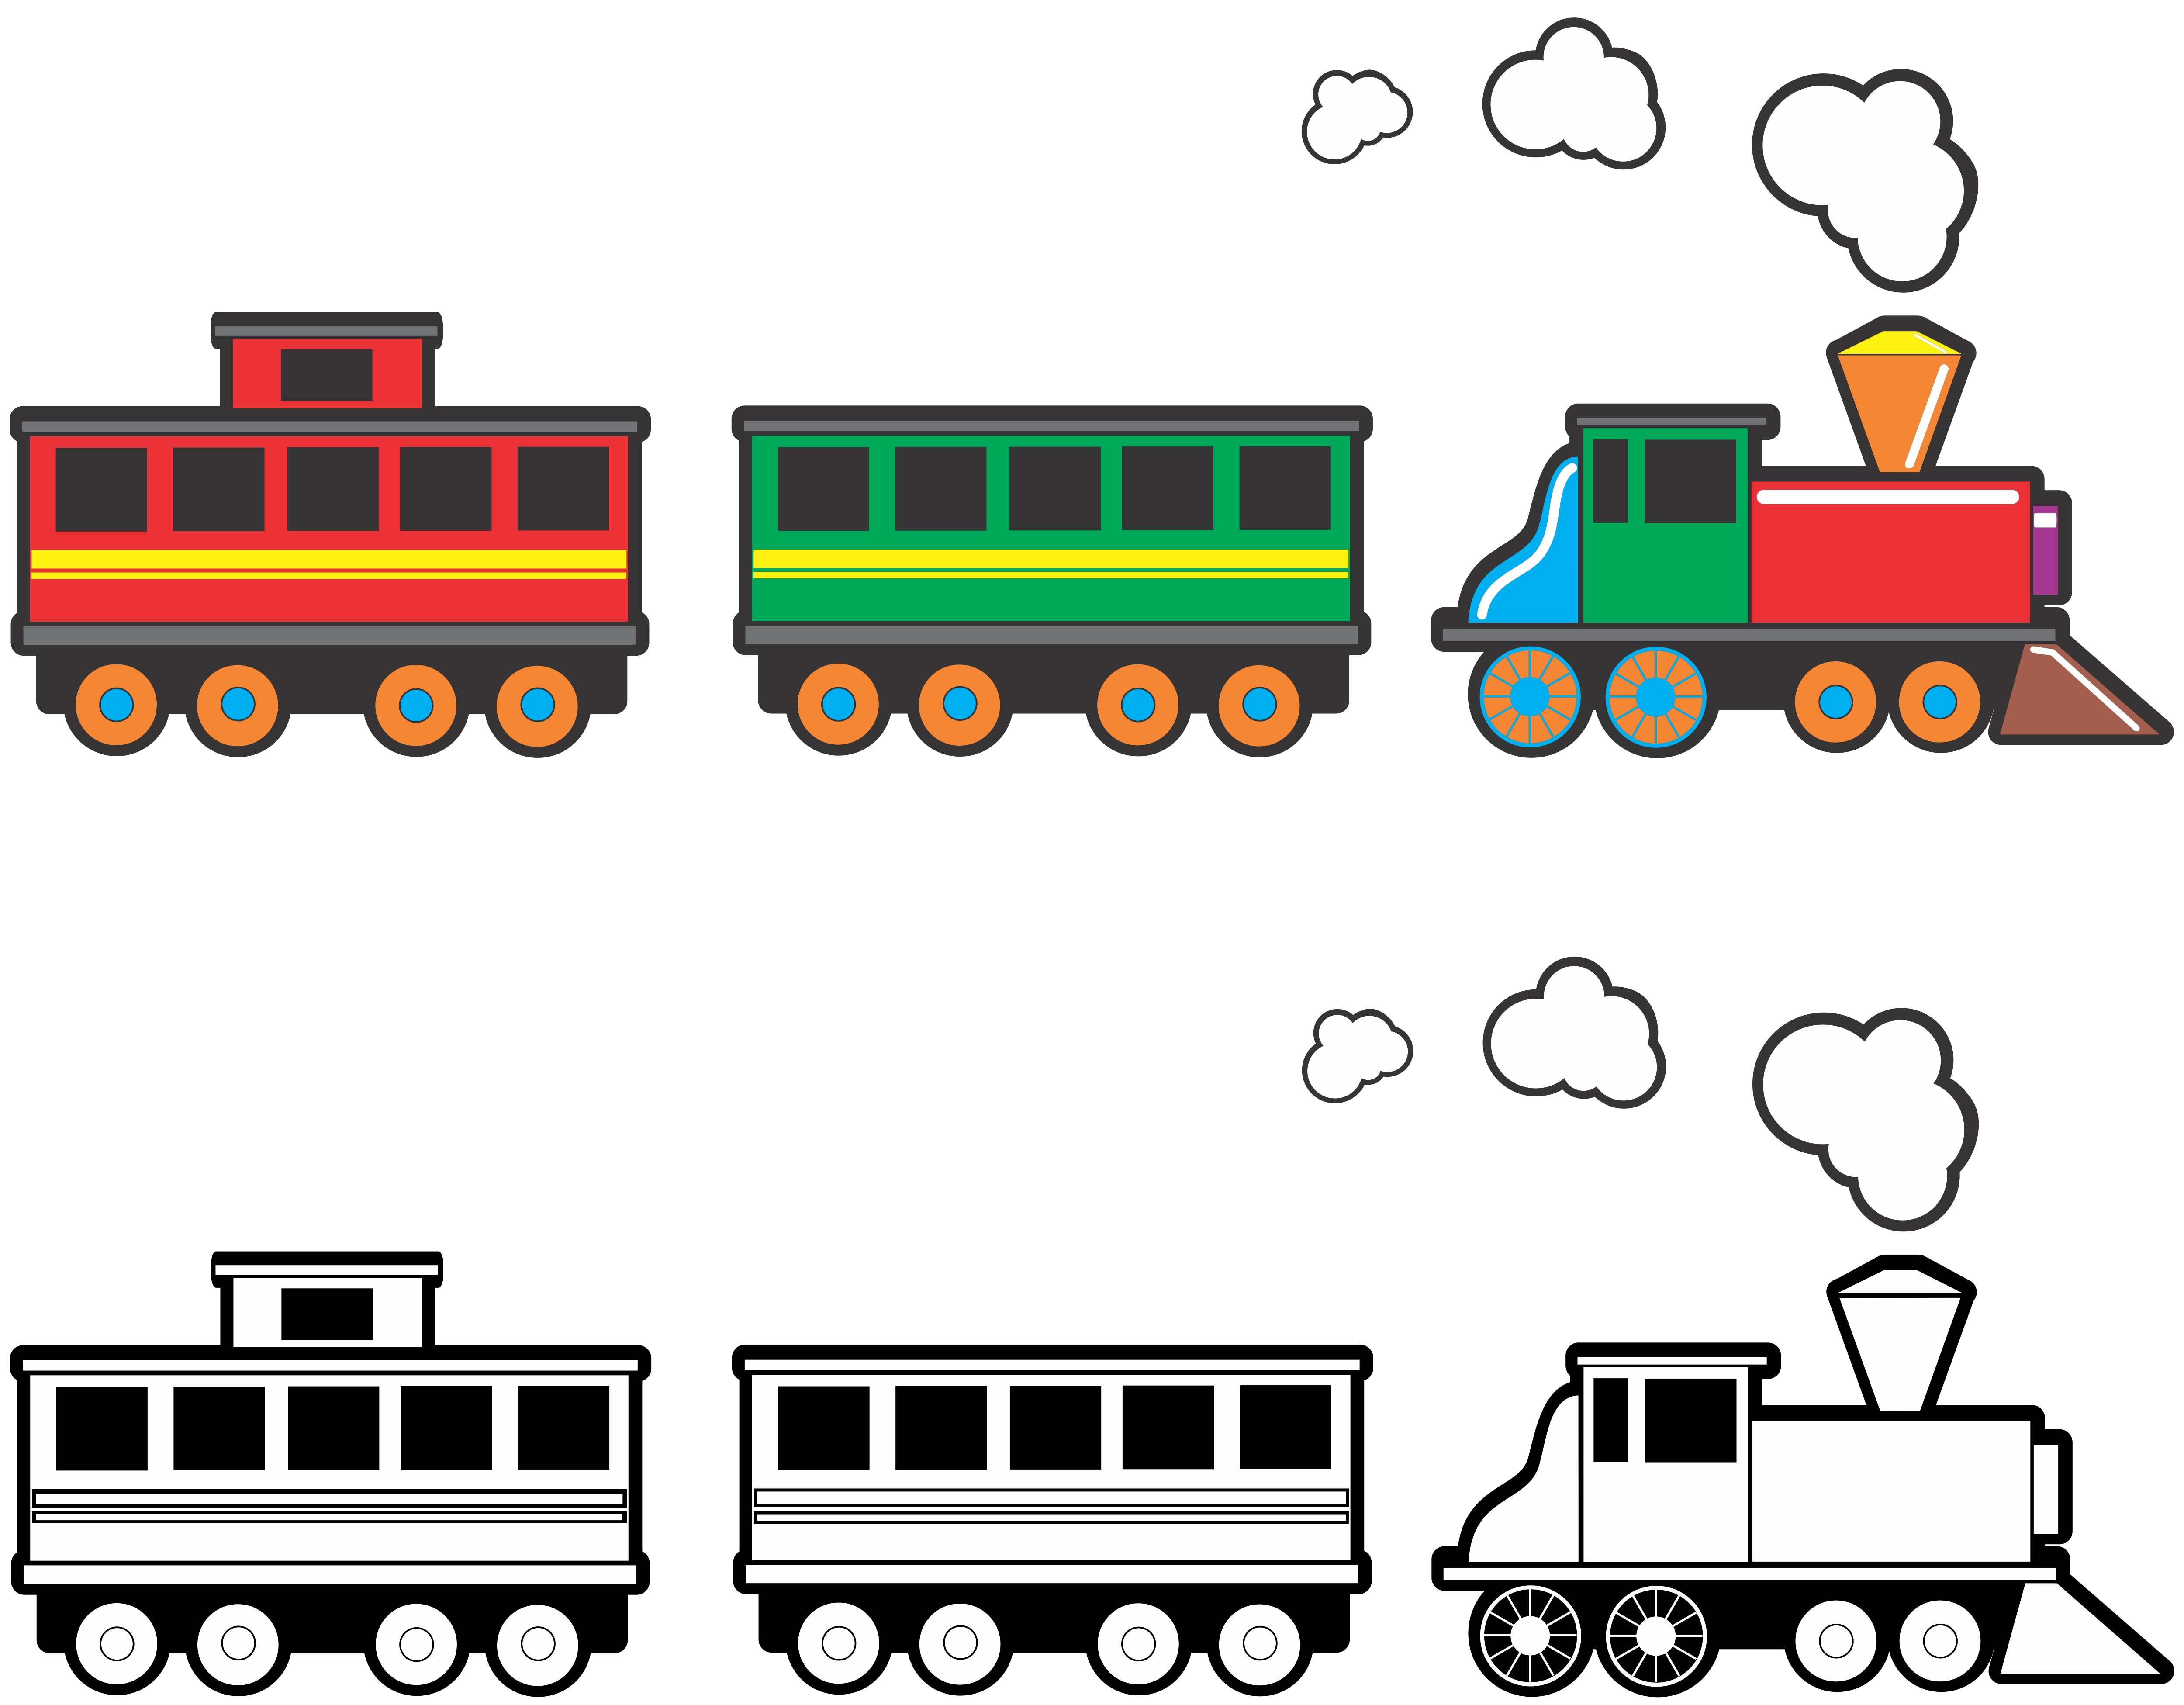 Track clipart train track. Tracks toy or cartoon